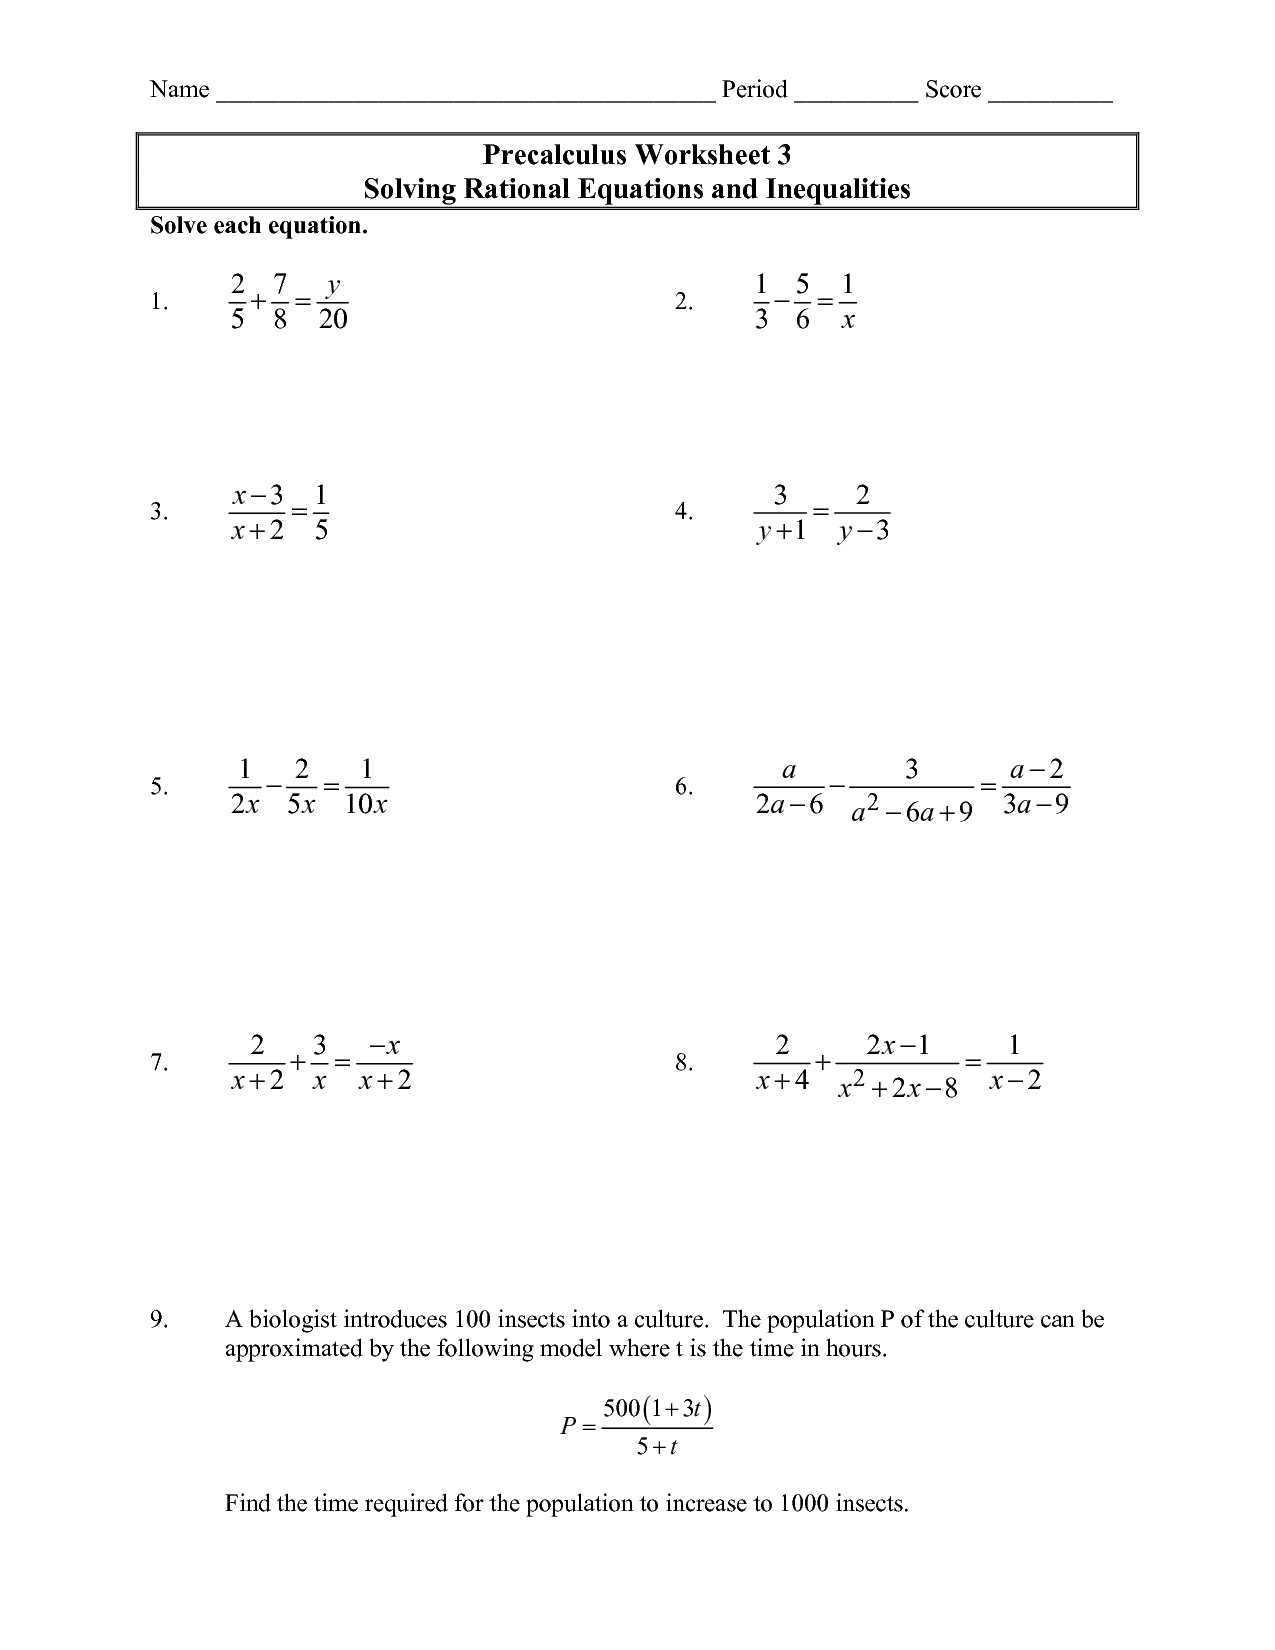 Solving Rational Equations And Inequalities Precalculus